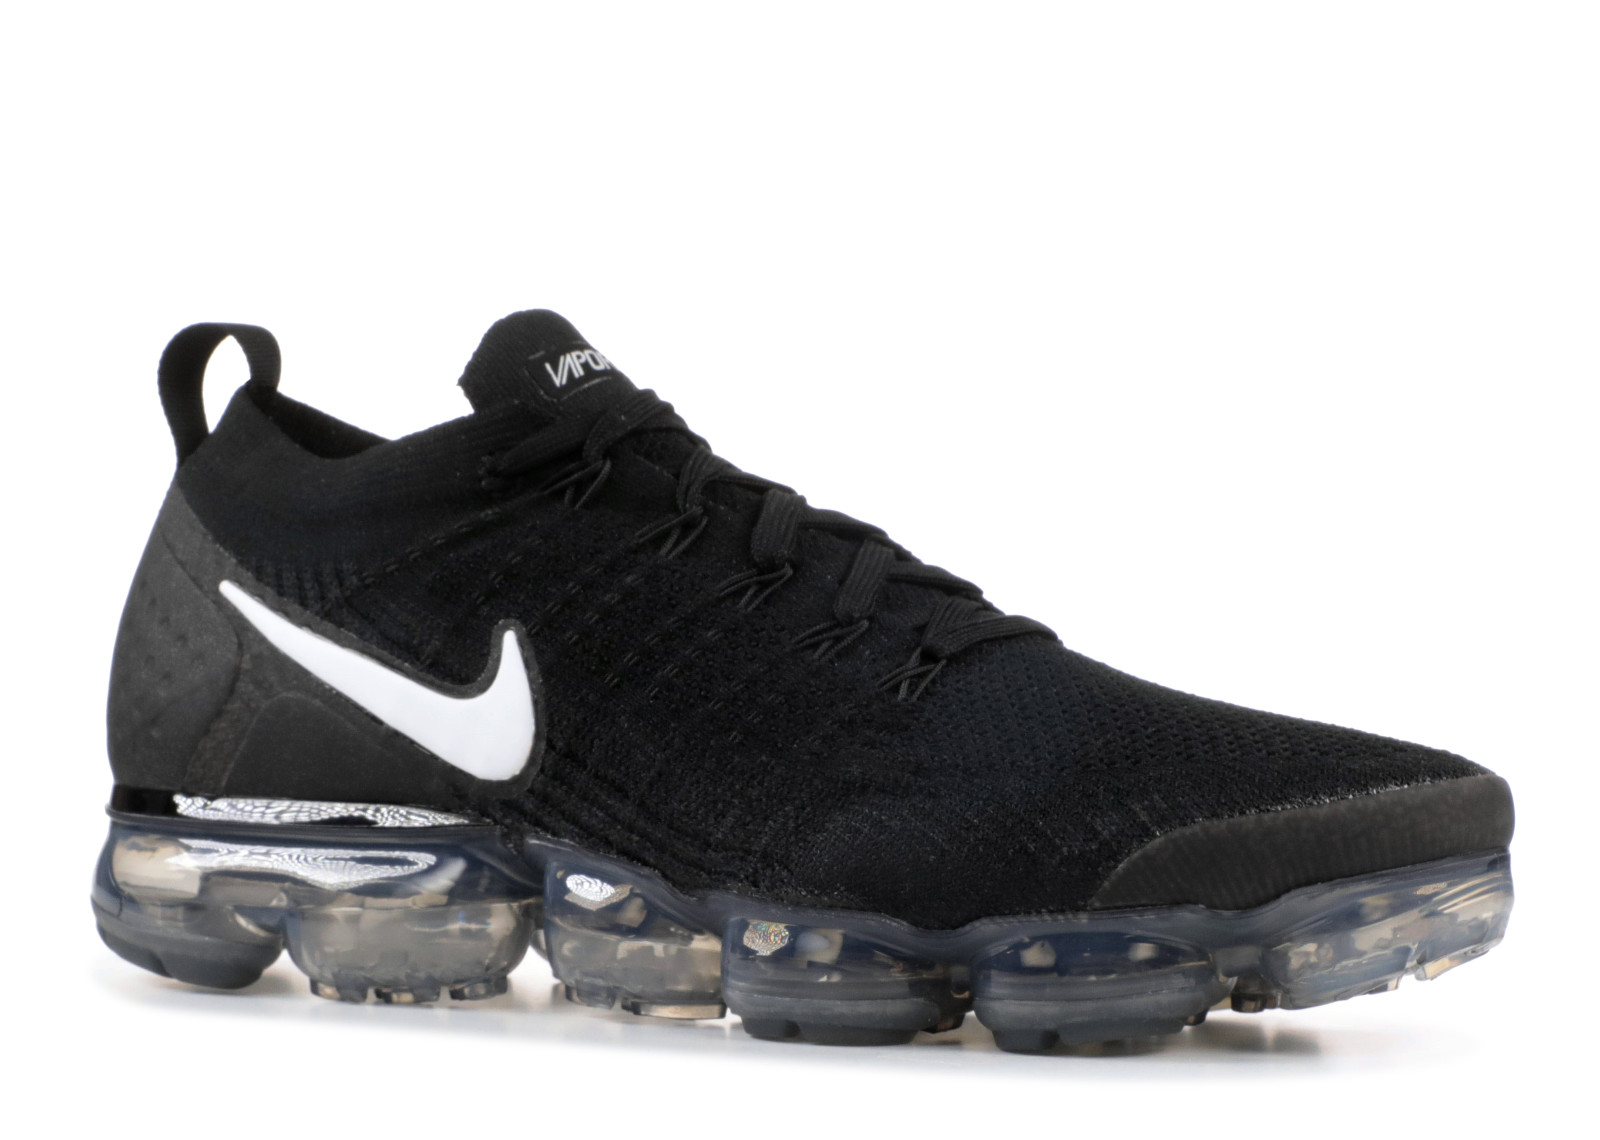 e8233e6d0a2b1 Nike Air VaporMax 2 Black White - 1